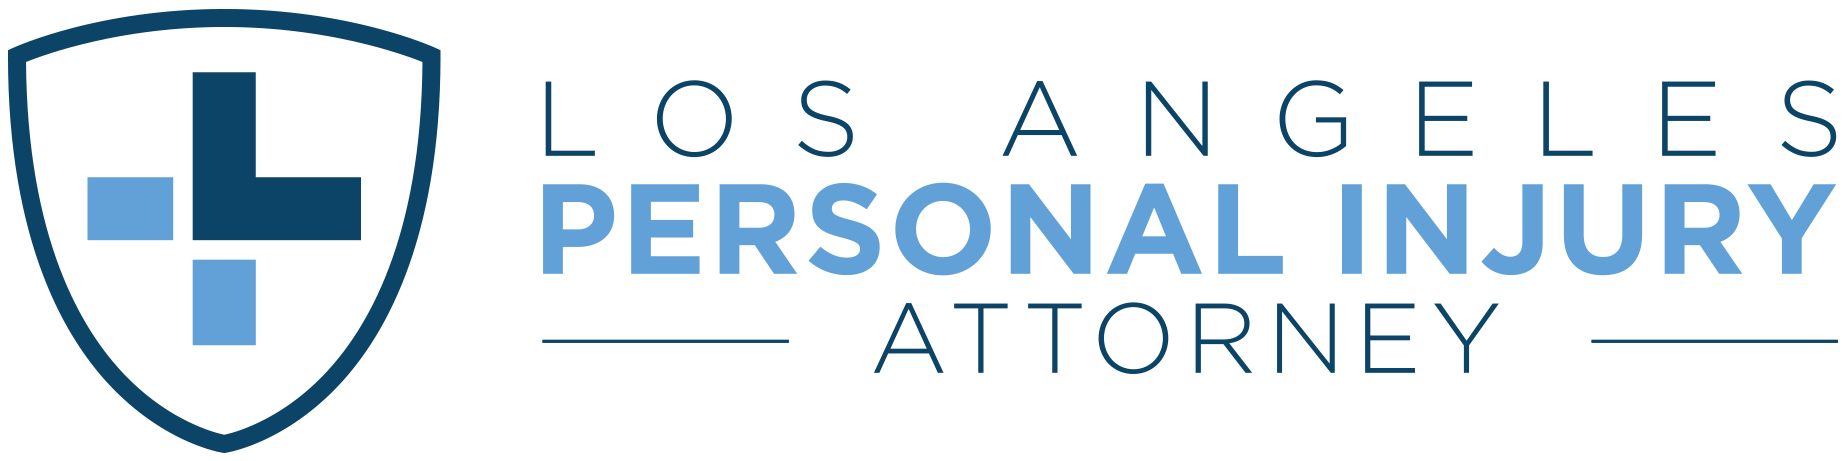 Los Angeles Personal Injury Attorney  logo